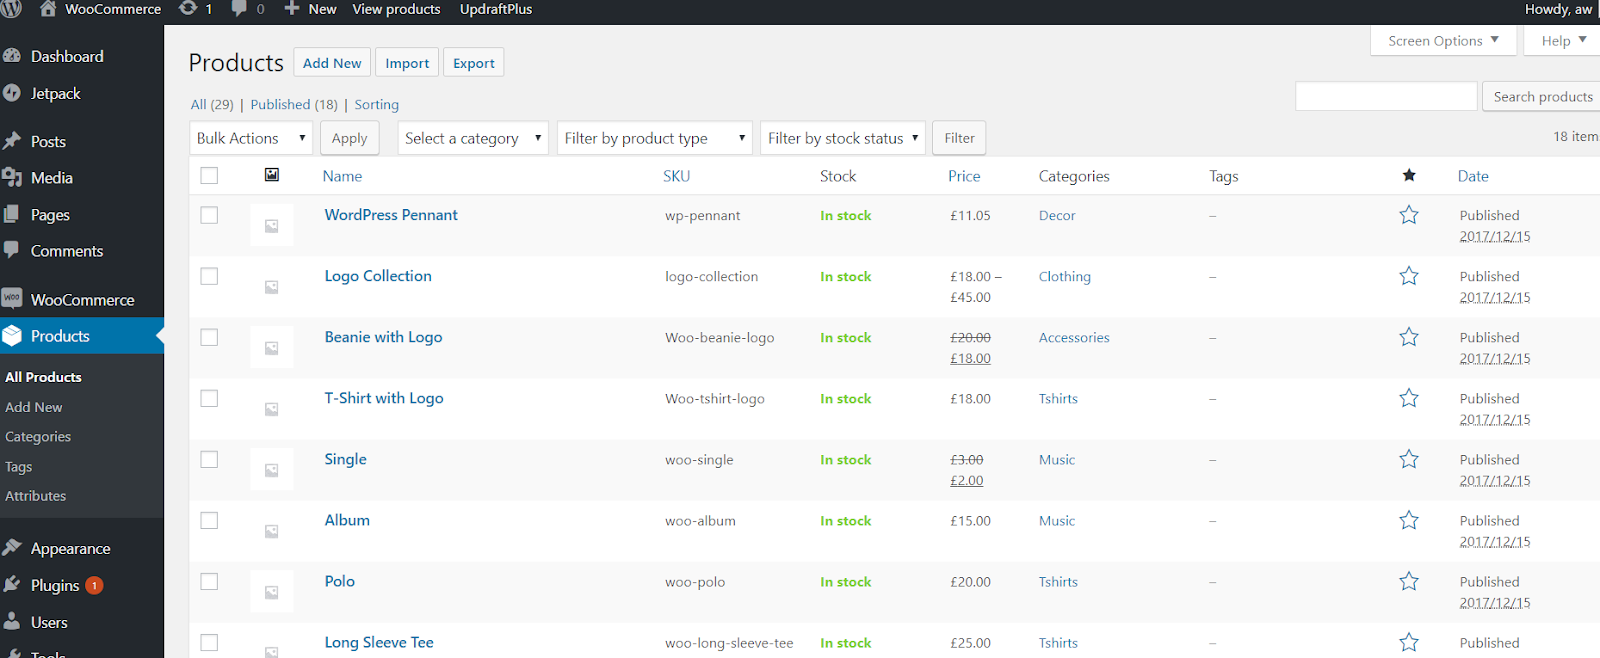 How to clone or migrate a WooCommerce WordPress store